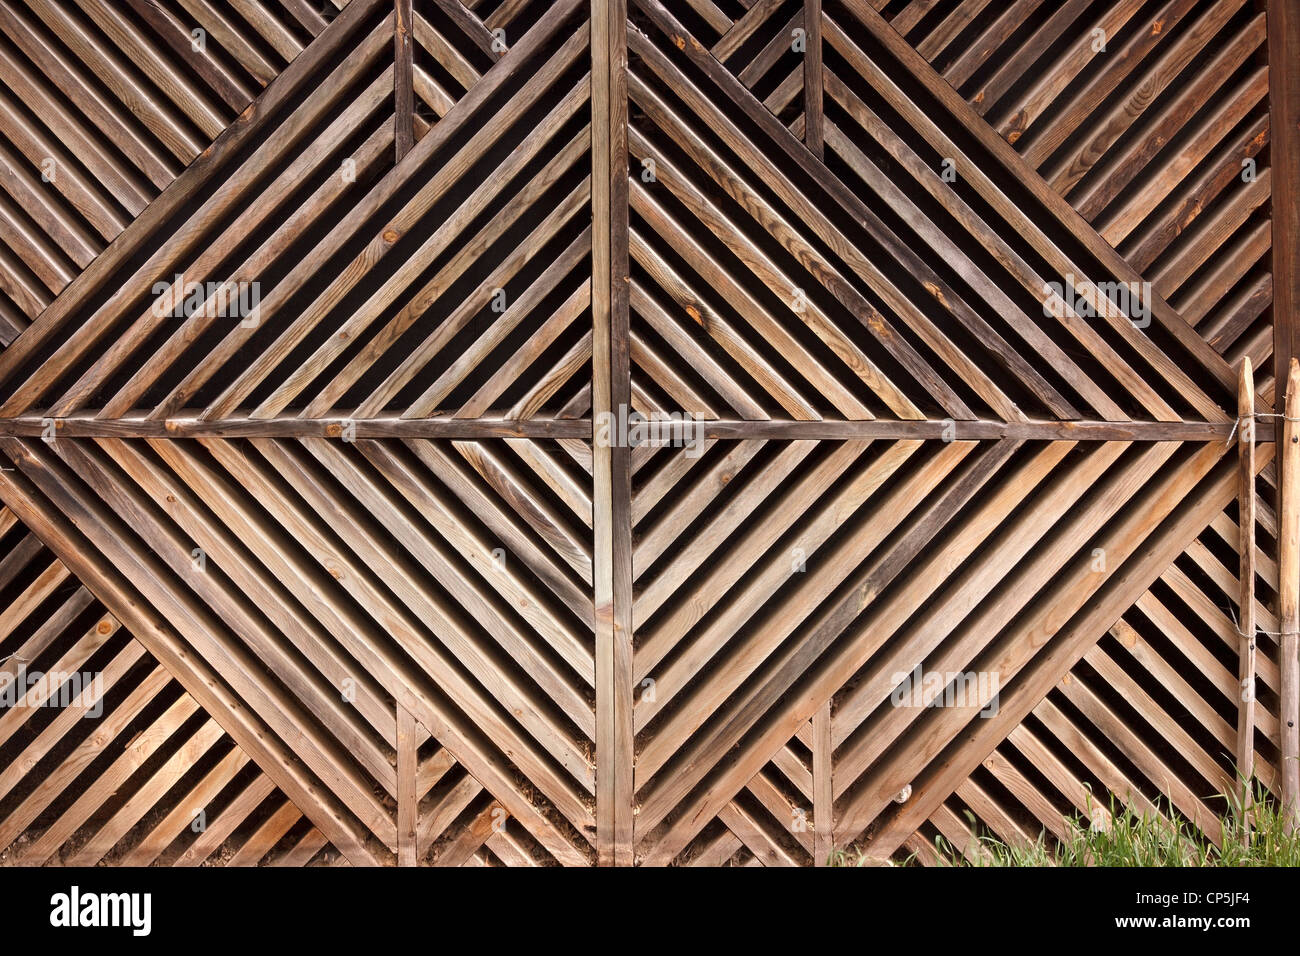 Decorative slatted wooden screen panels on utility